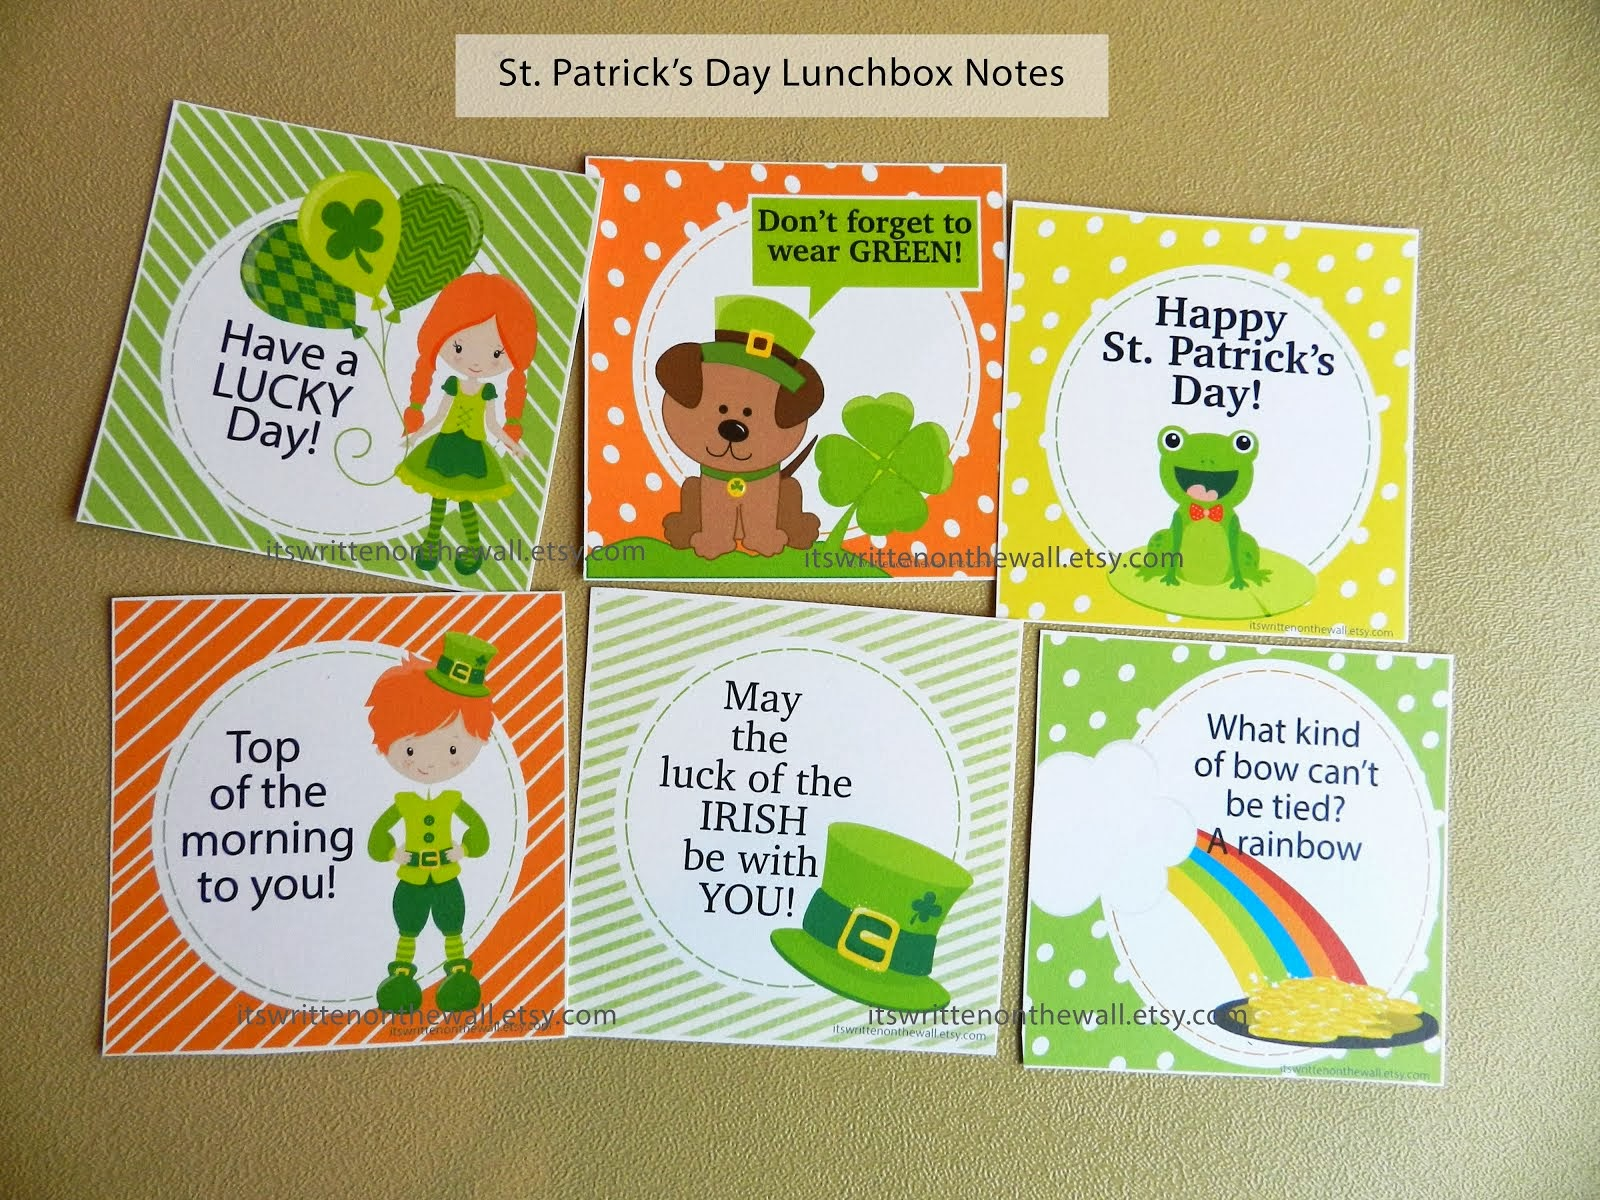 St-Patrick's Day Lunchbox Notes + Everyday Notes